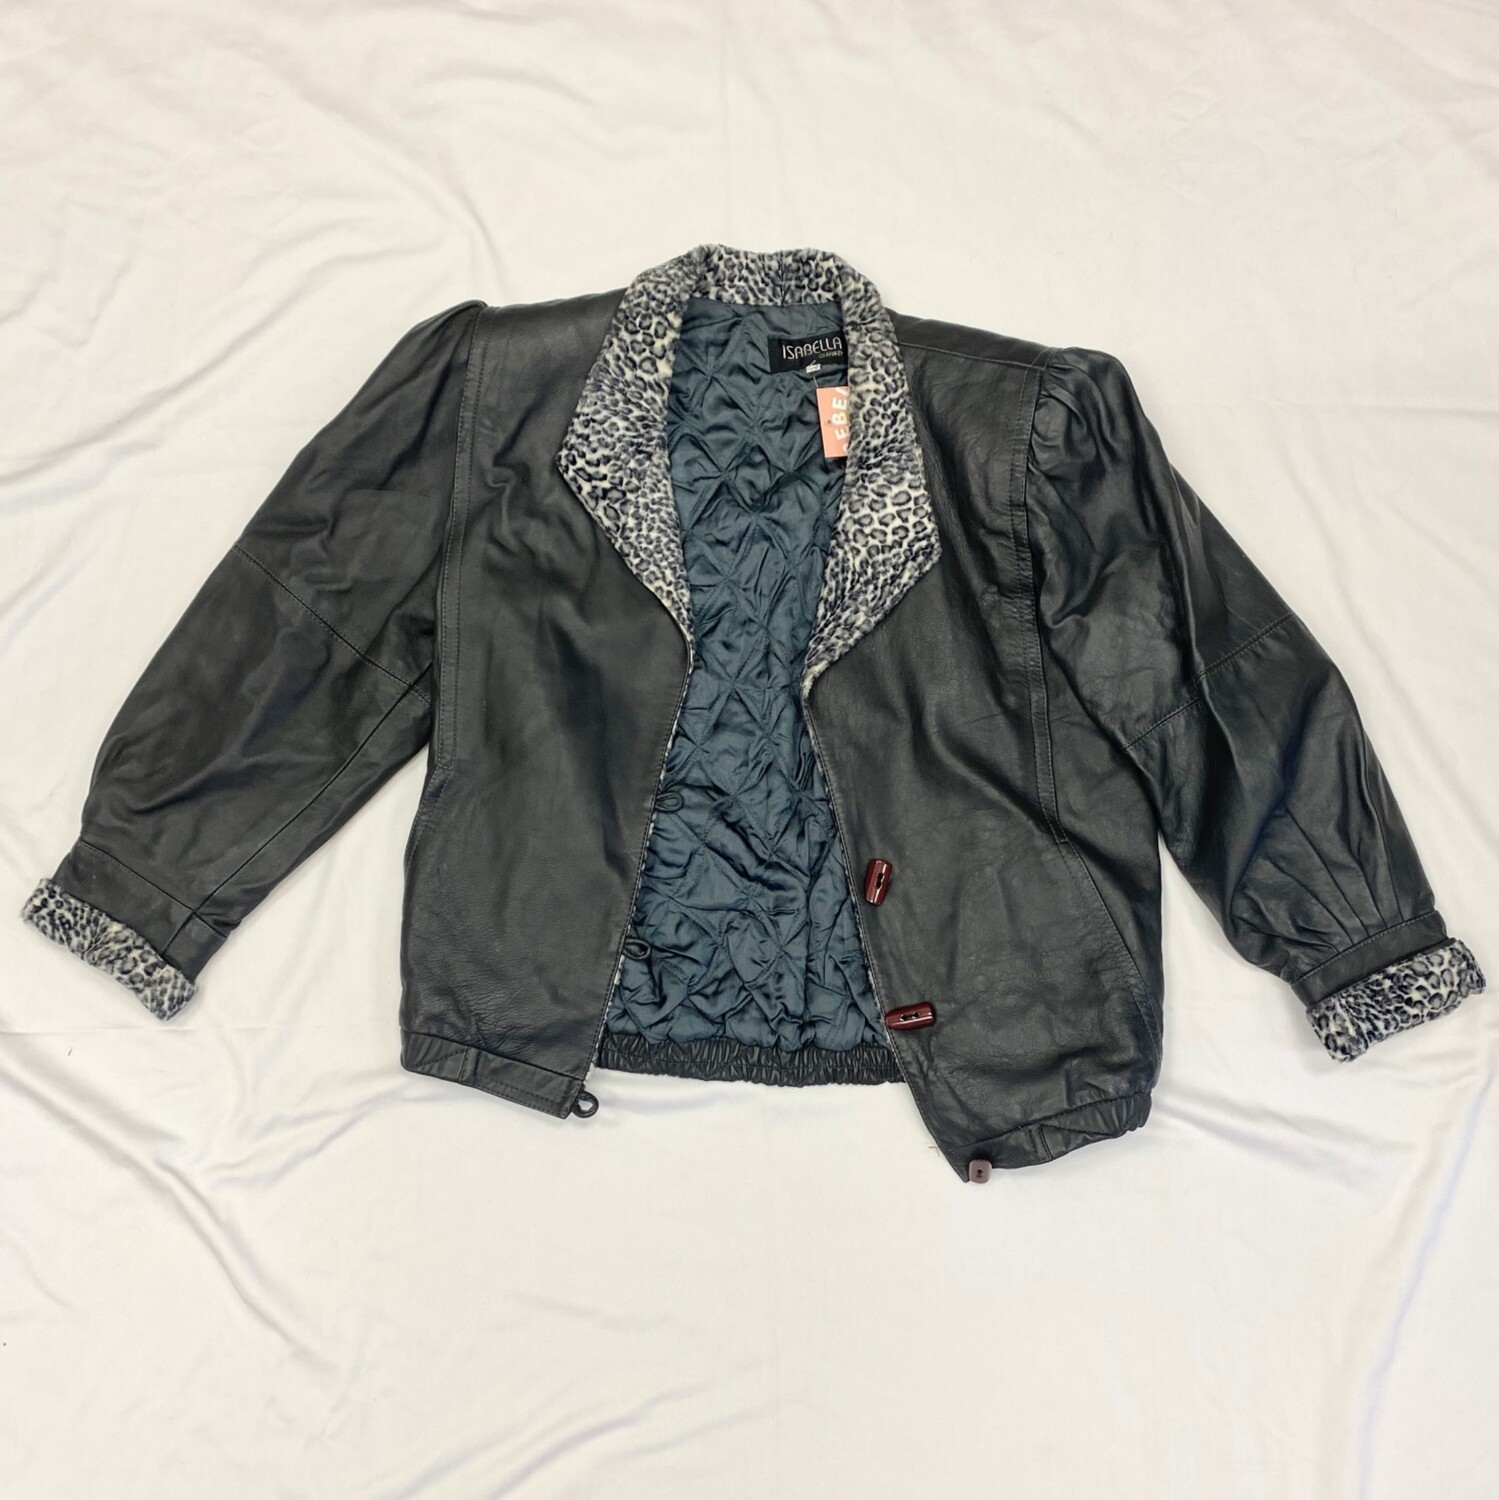 Isabella Charcoal Grey Leather Jacket with Faux Leopard Collar